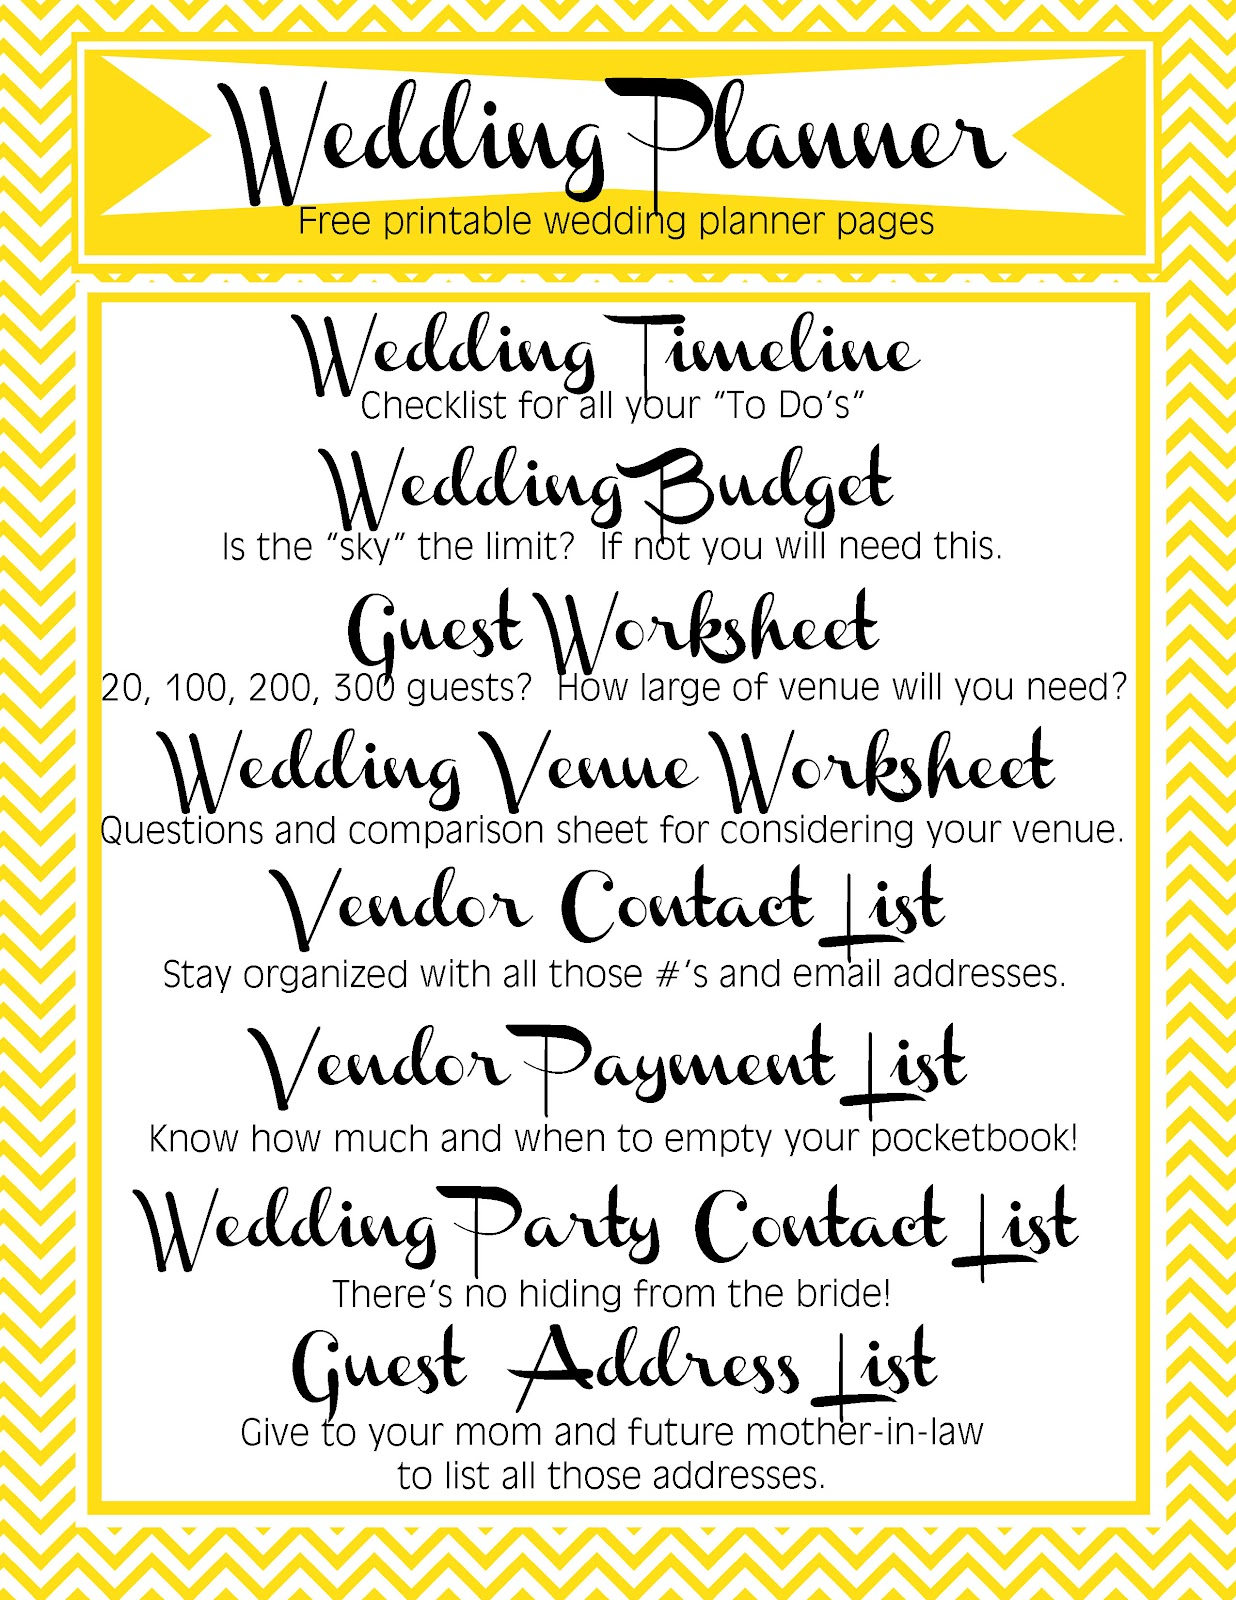 Applying The Wedding Planning Templates